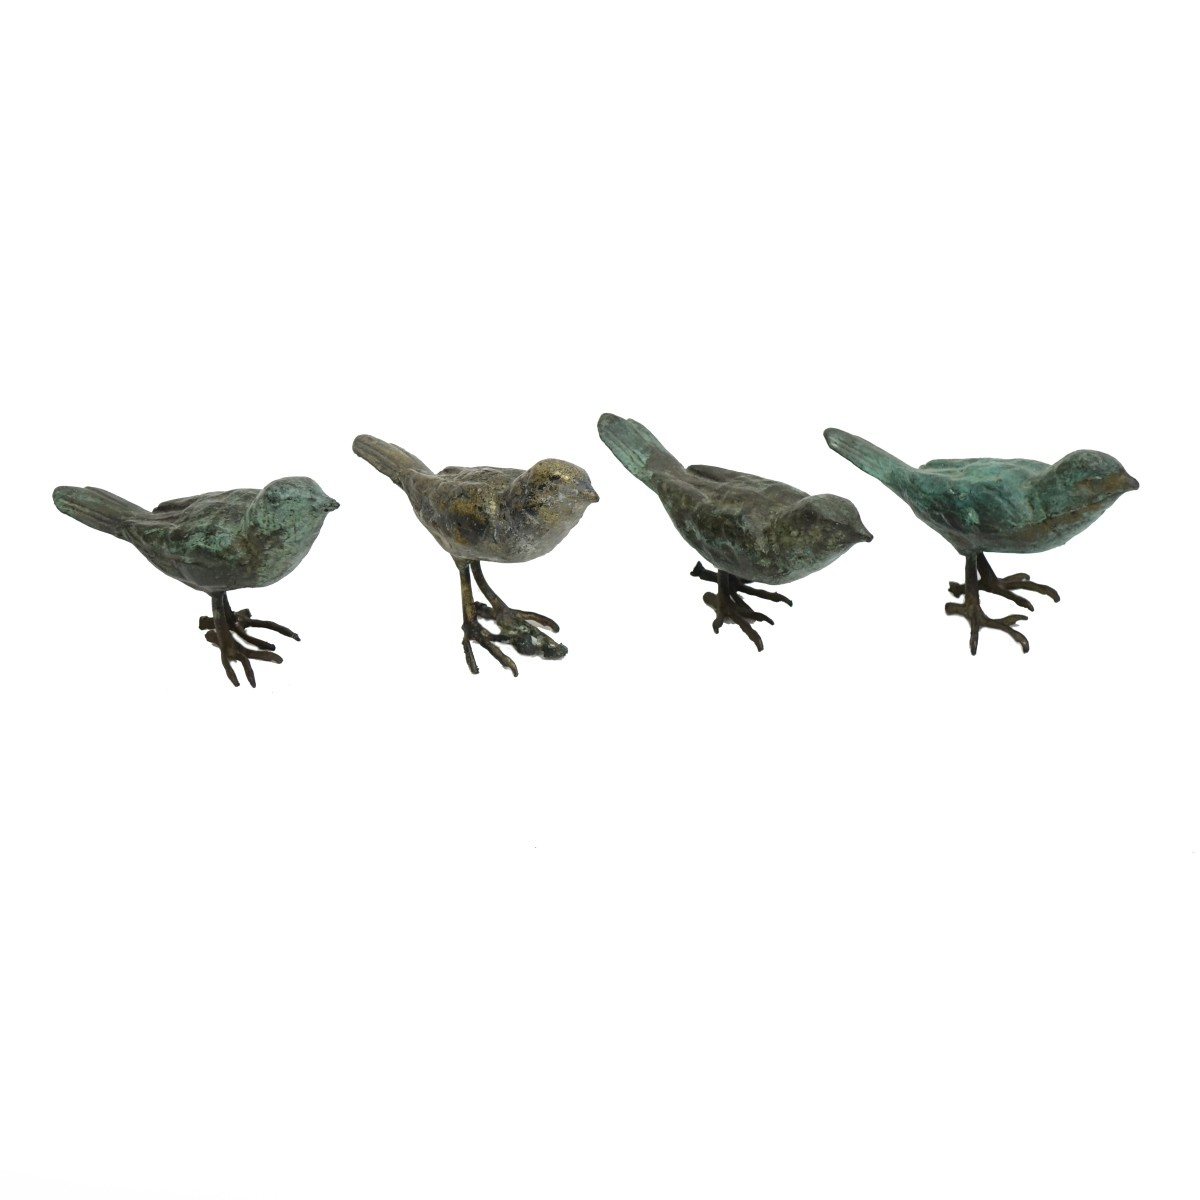 Four (4) Early 20th C. Miniature Bronze Figurines